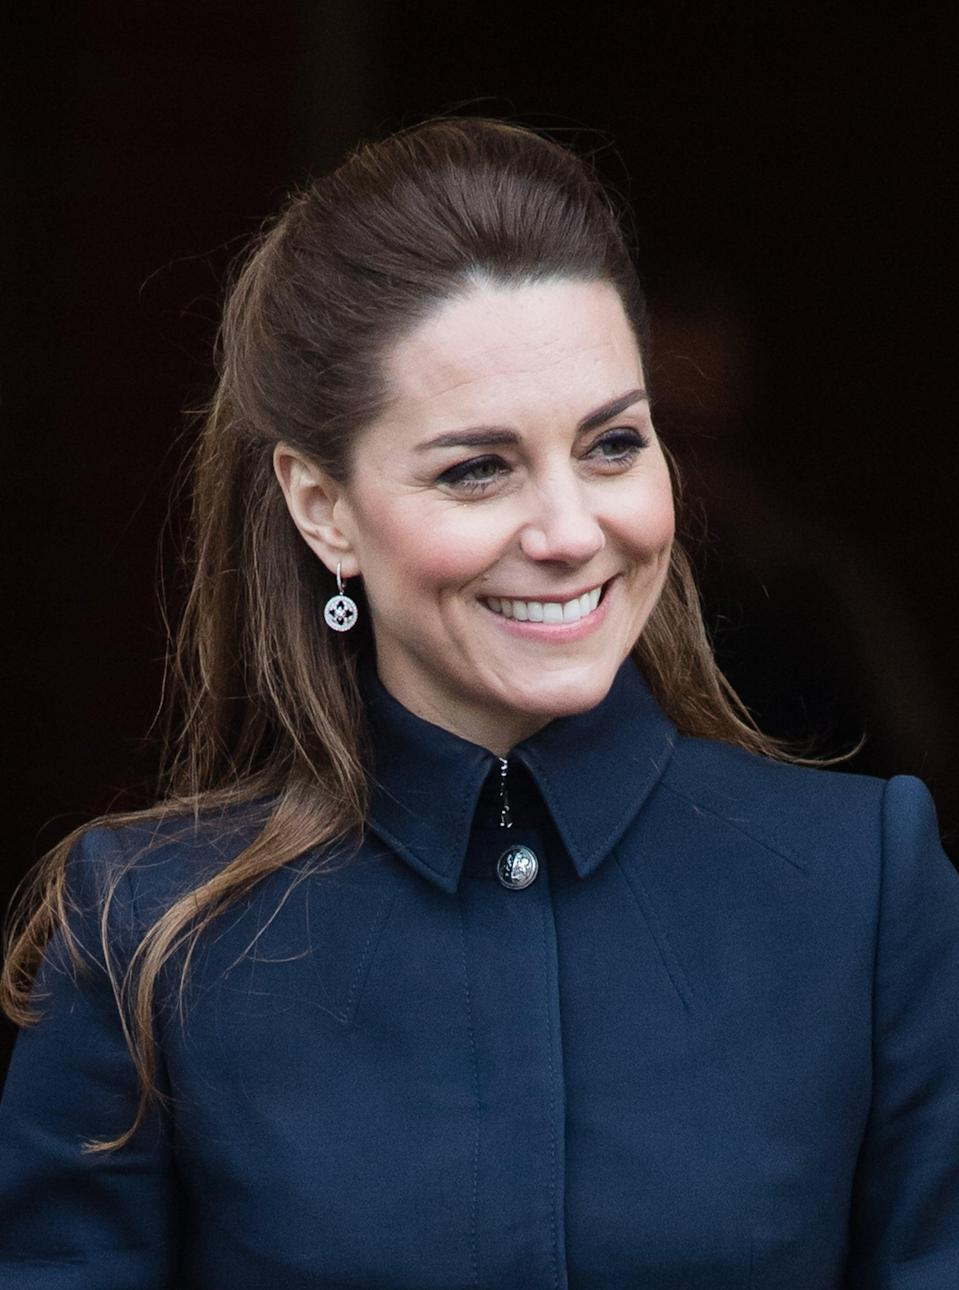 <p>At an appearance in Leicestershire, the duchess changed things up with an elegant half-up style that we haven't seen from her in a while. Volume at the crown of her head kept the style from looking too severe, while the slight bend through the mid-lengths broke up the strict, linear lines of her coat.</p>